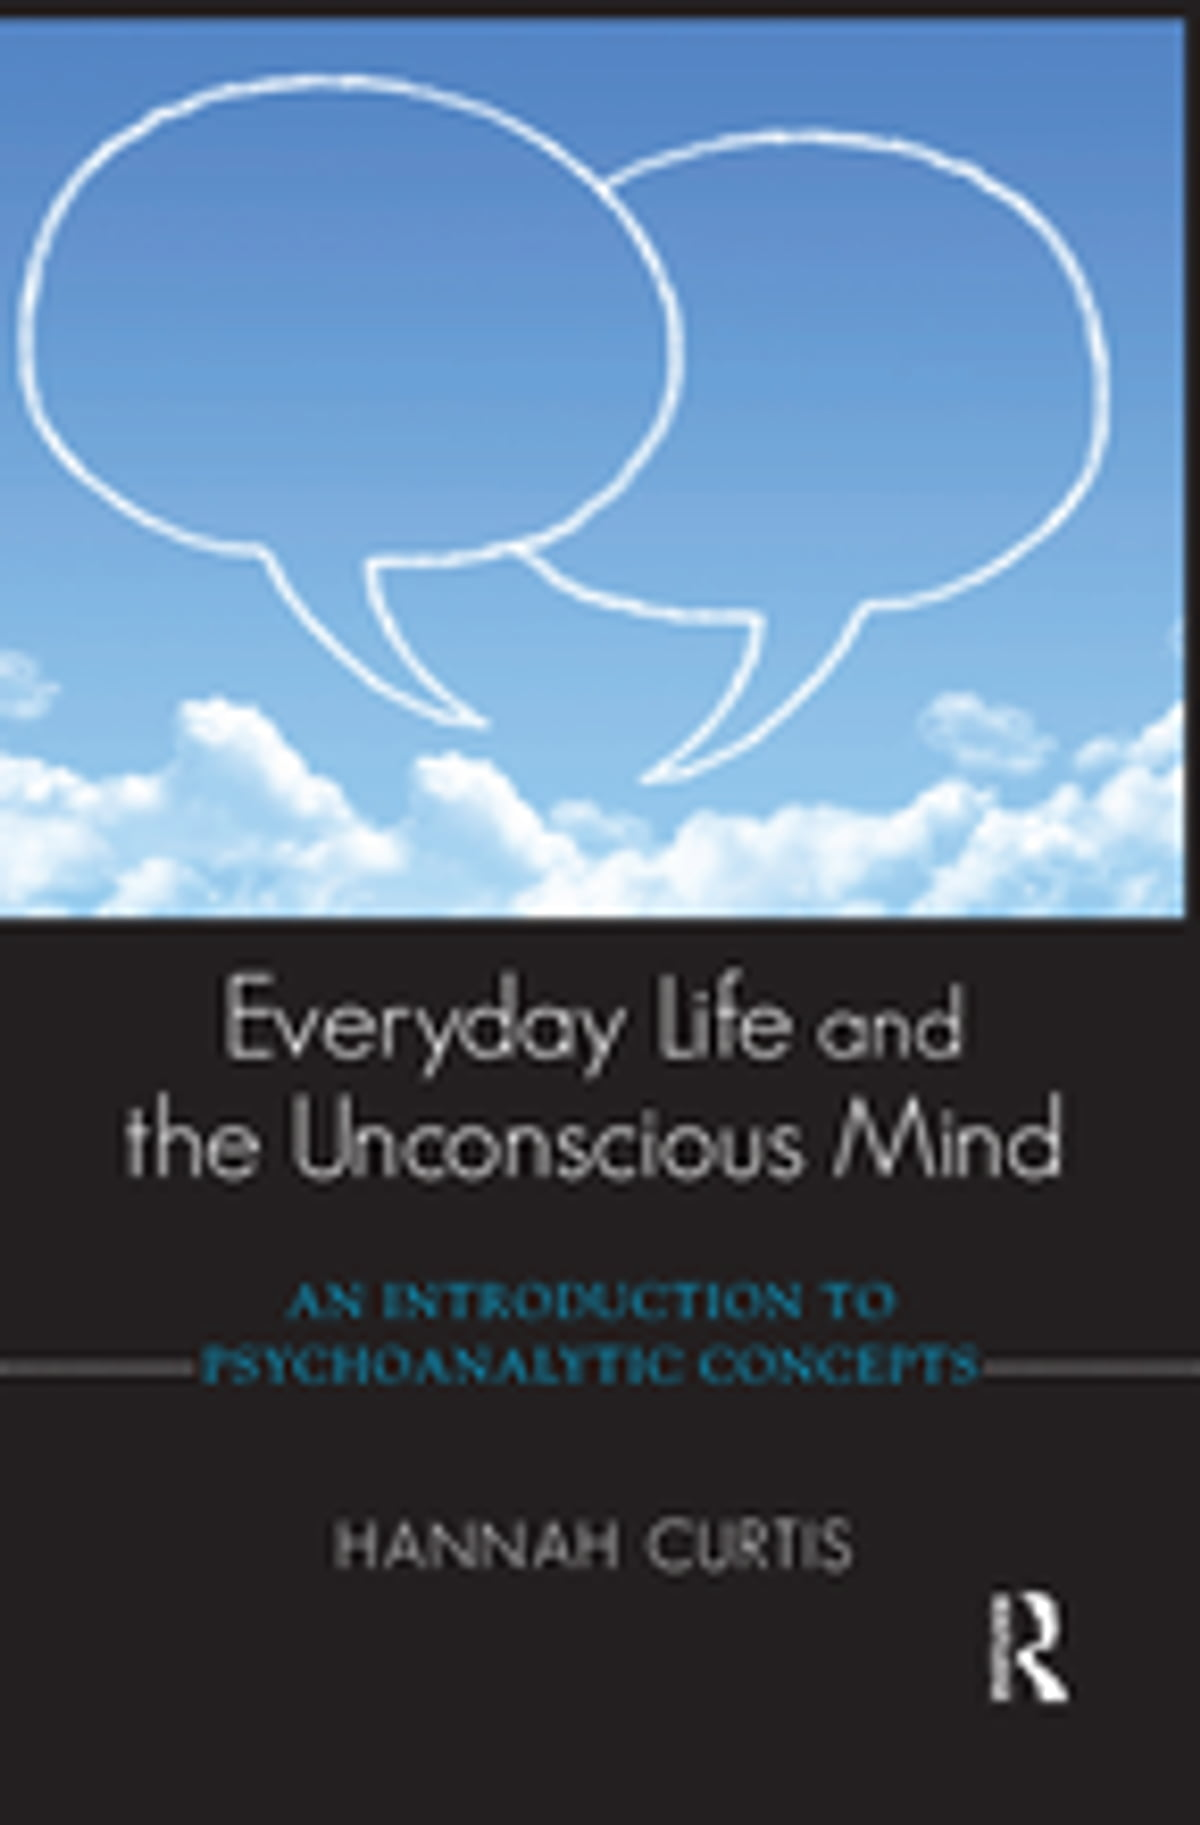 Everyday Life and the Unconscious Mind eBook di Hannah Curtis -  9780429913358 | Rakuten Kobo